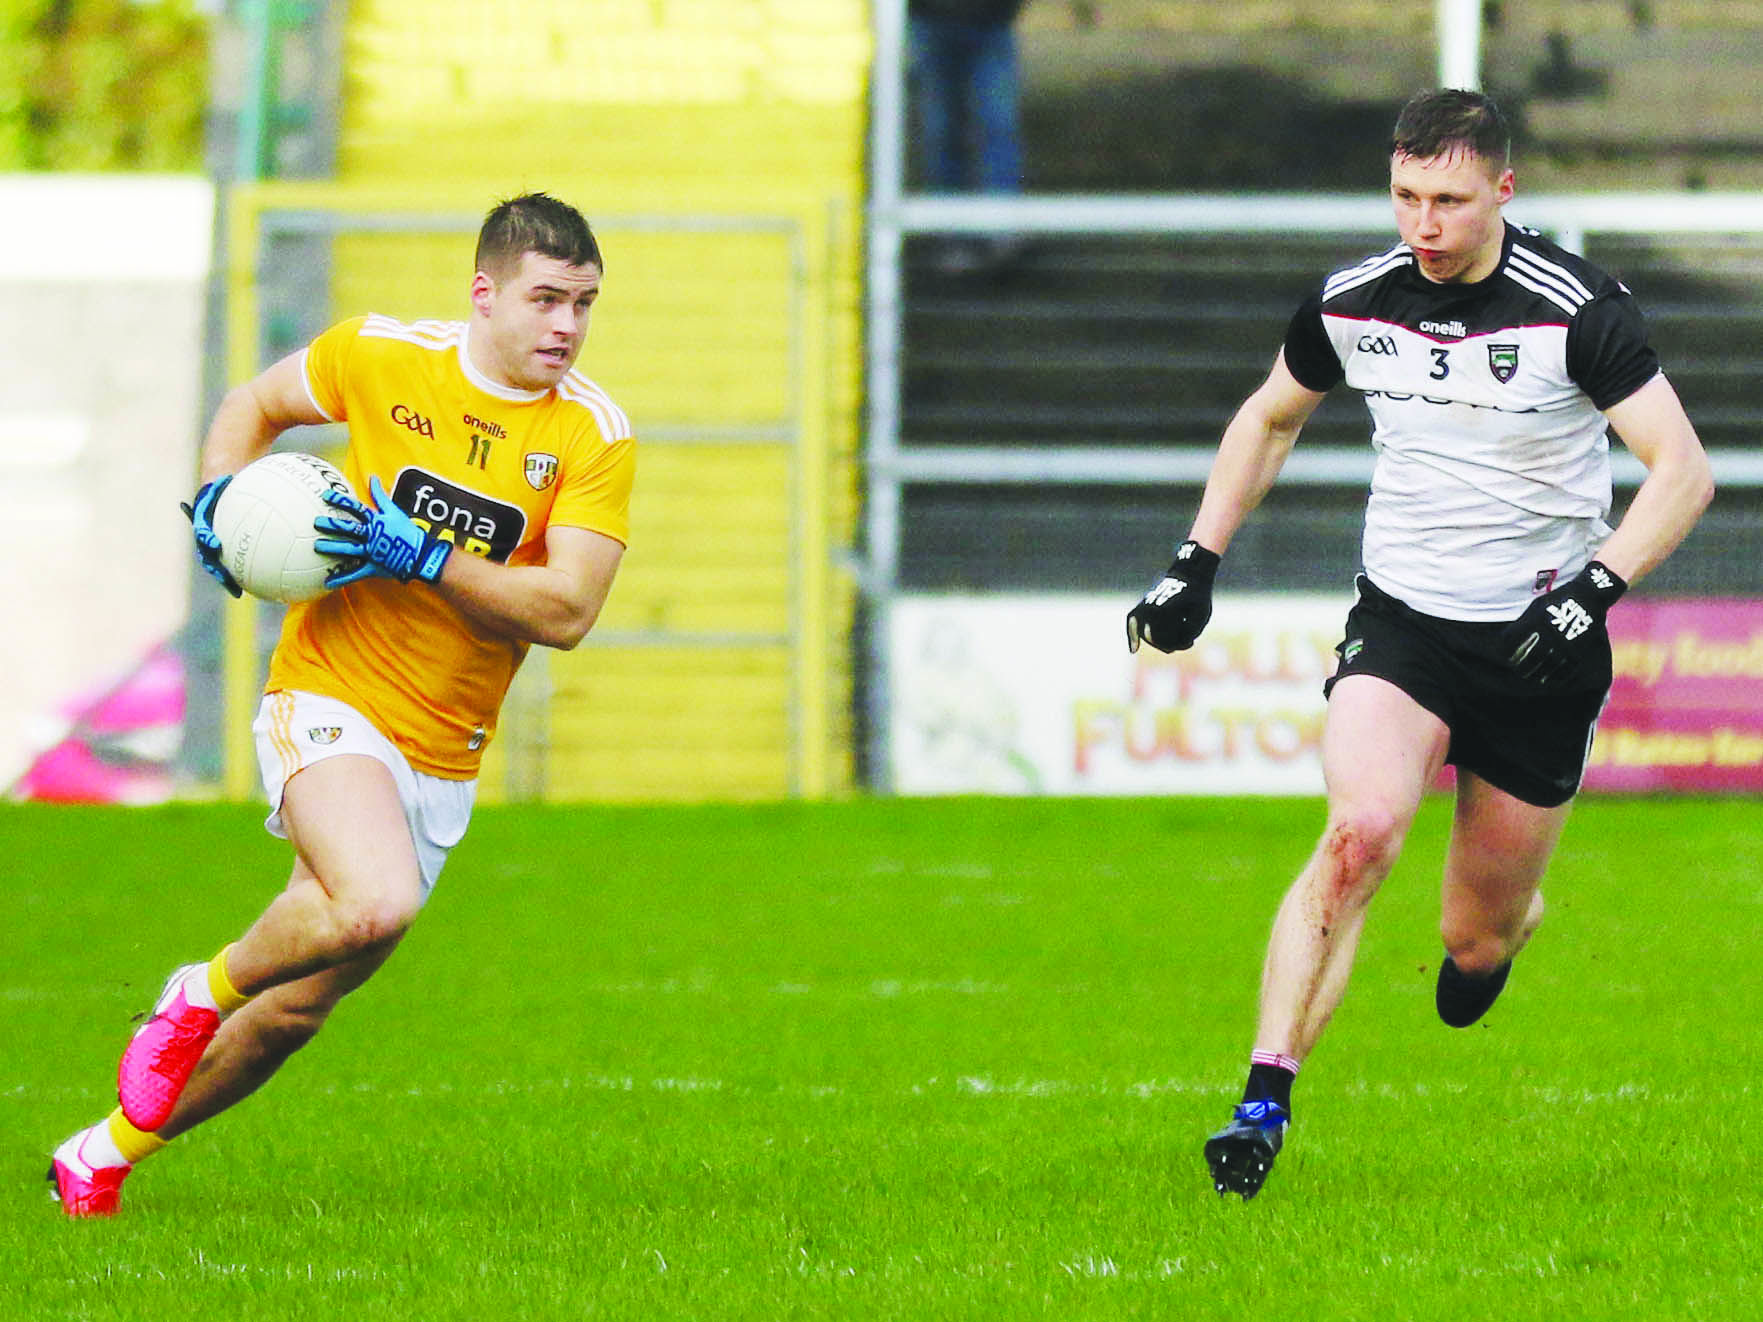 Paddy McBride insists Antrim's footballers must think of nothing less than victory on Saturday and not be left relying on other results going their way